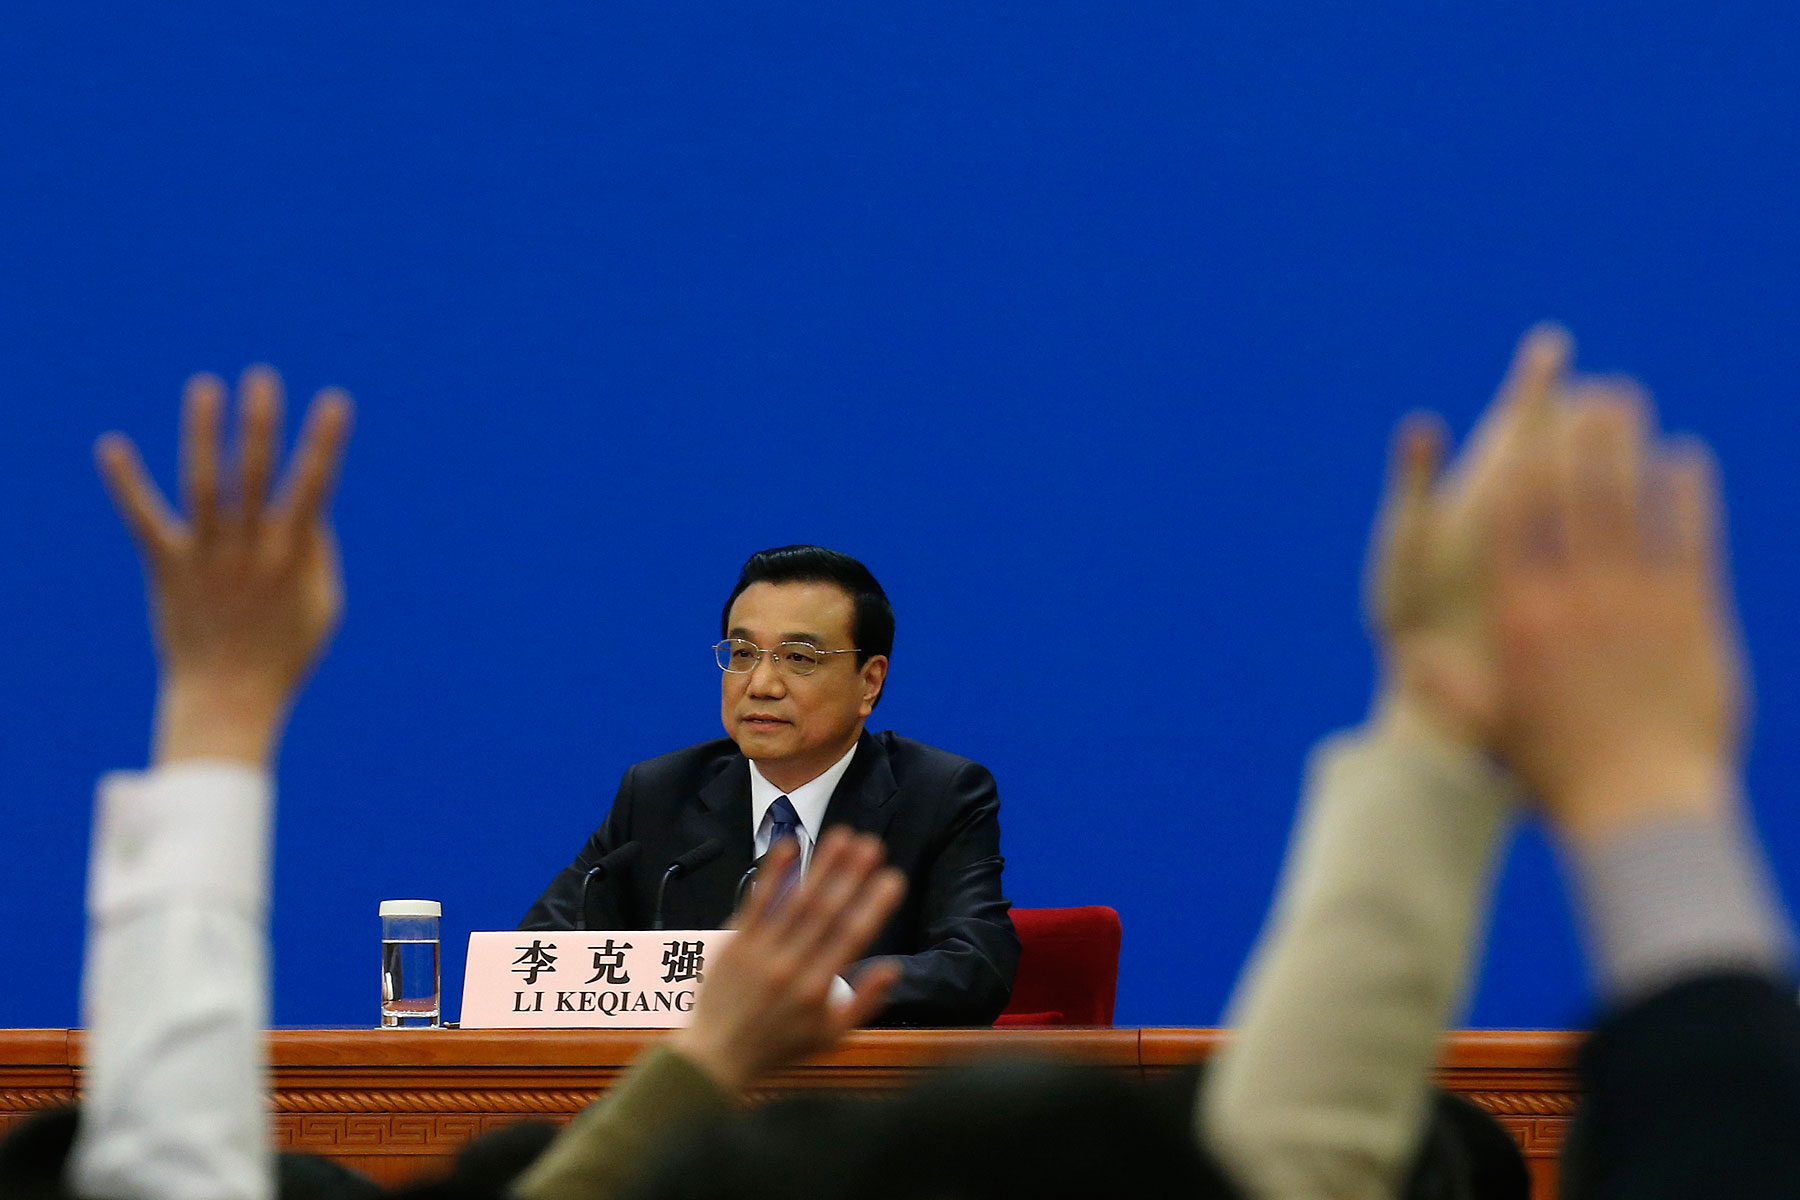 China's Premier Li Keqiang takes questions during a news conference, after the closing ceremony of the Chinese National People's Congress (NPC) at the Great Hall of the People, in Beijing March 13, 2014